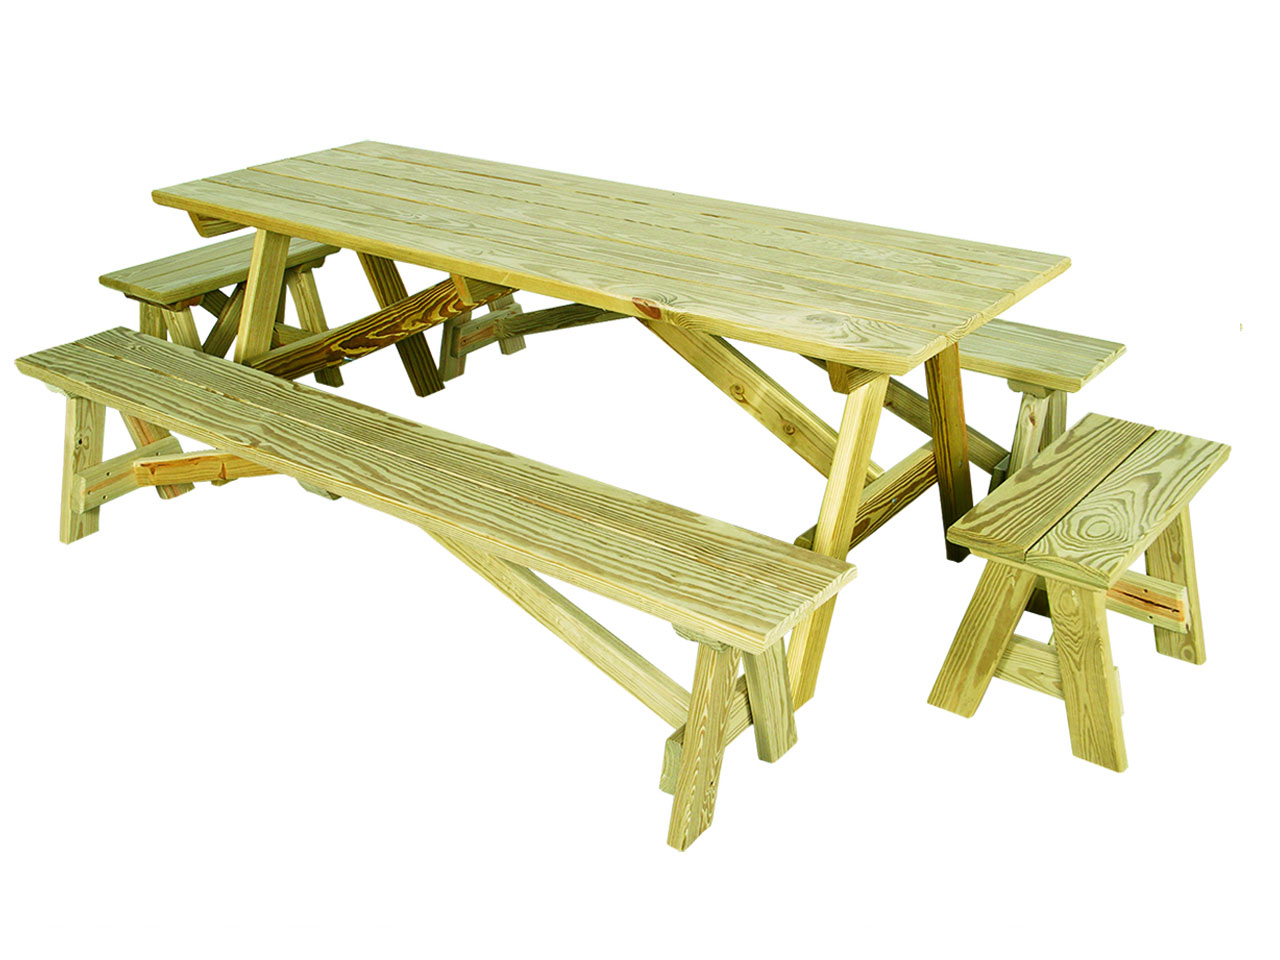 Outdoor furniture - wood picnic table